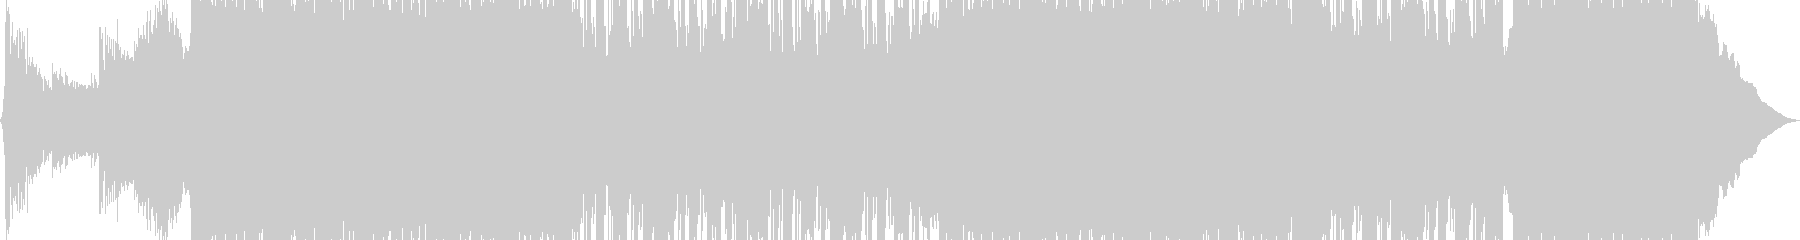 Groove promotional music's unreproduced waveform